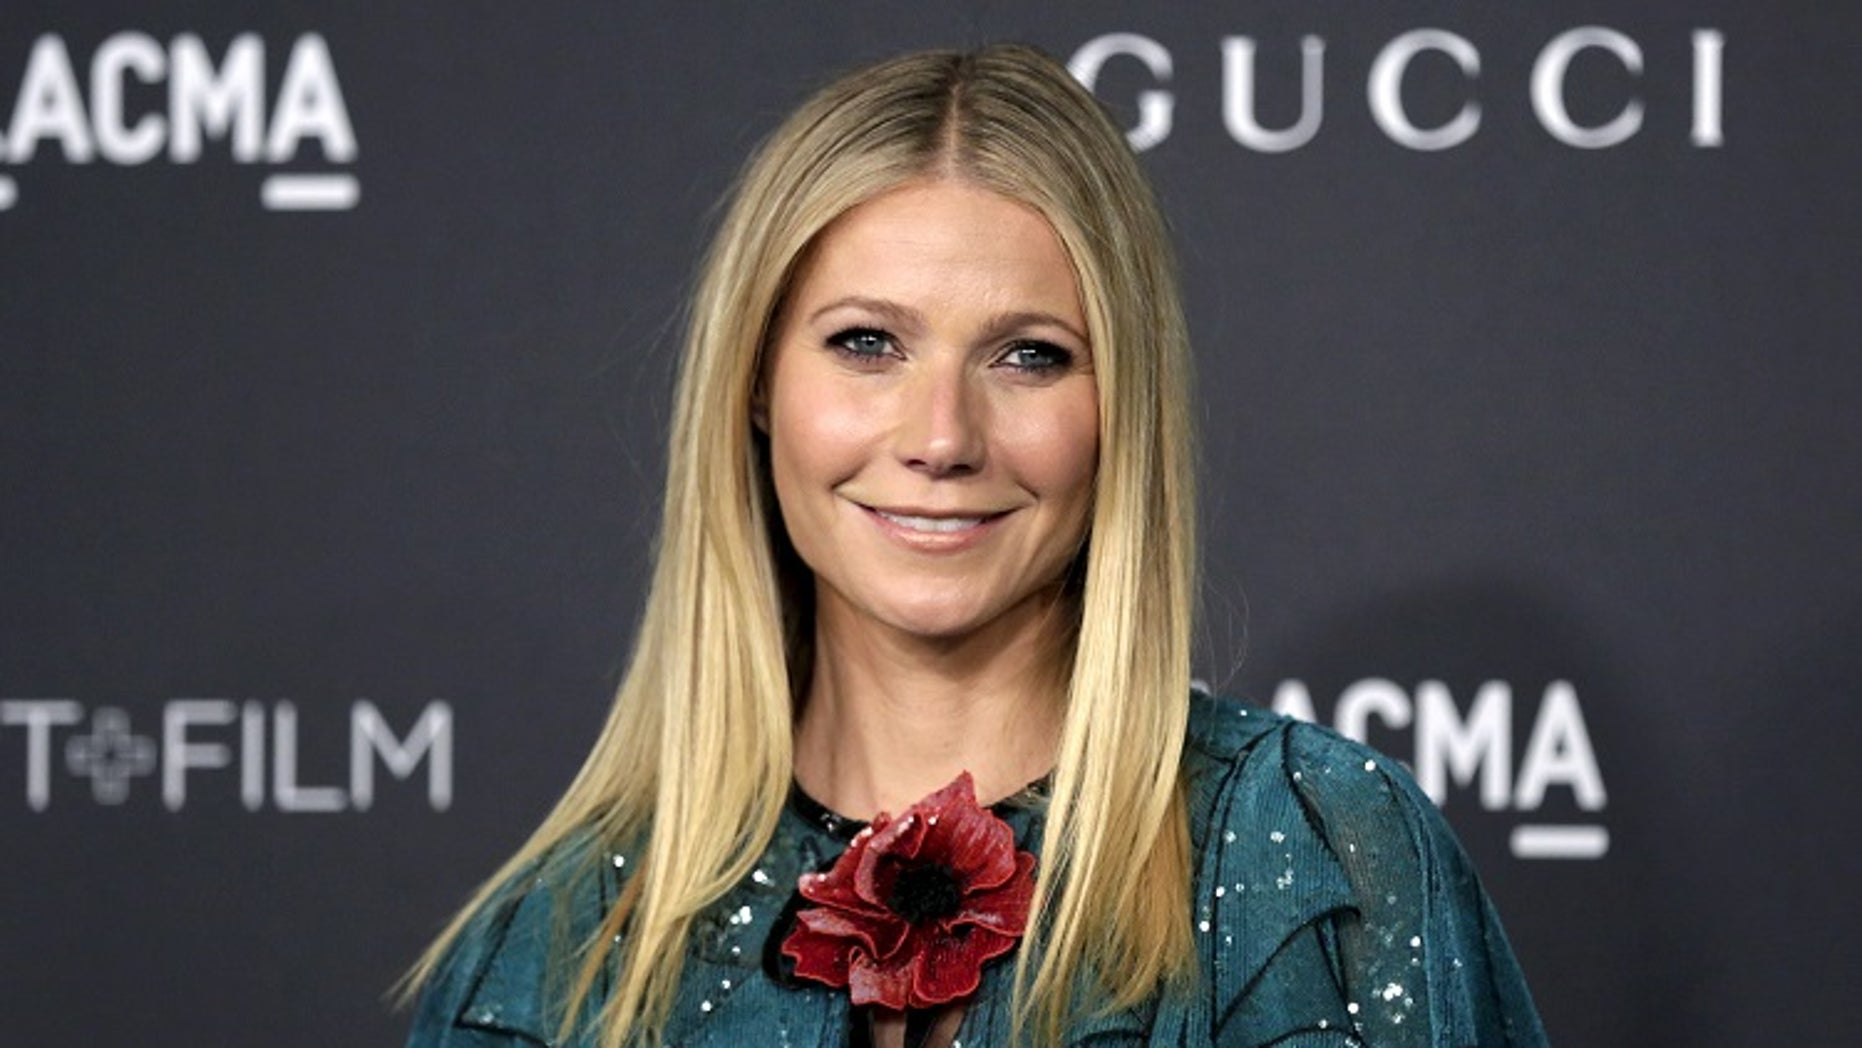 Gwyneth Paltrow Says She's Going Through Perimenopause At 46—But What Is That